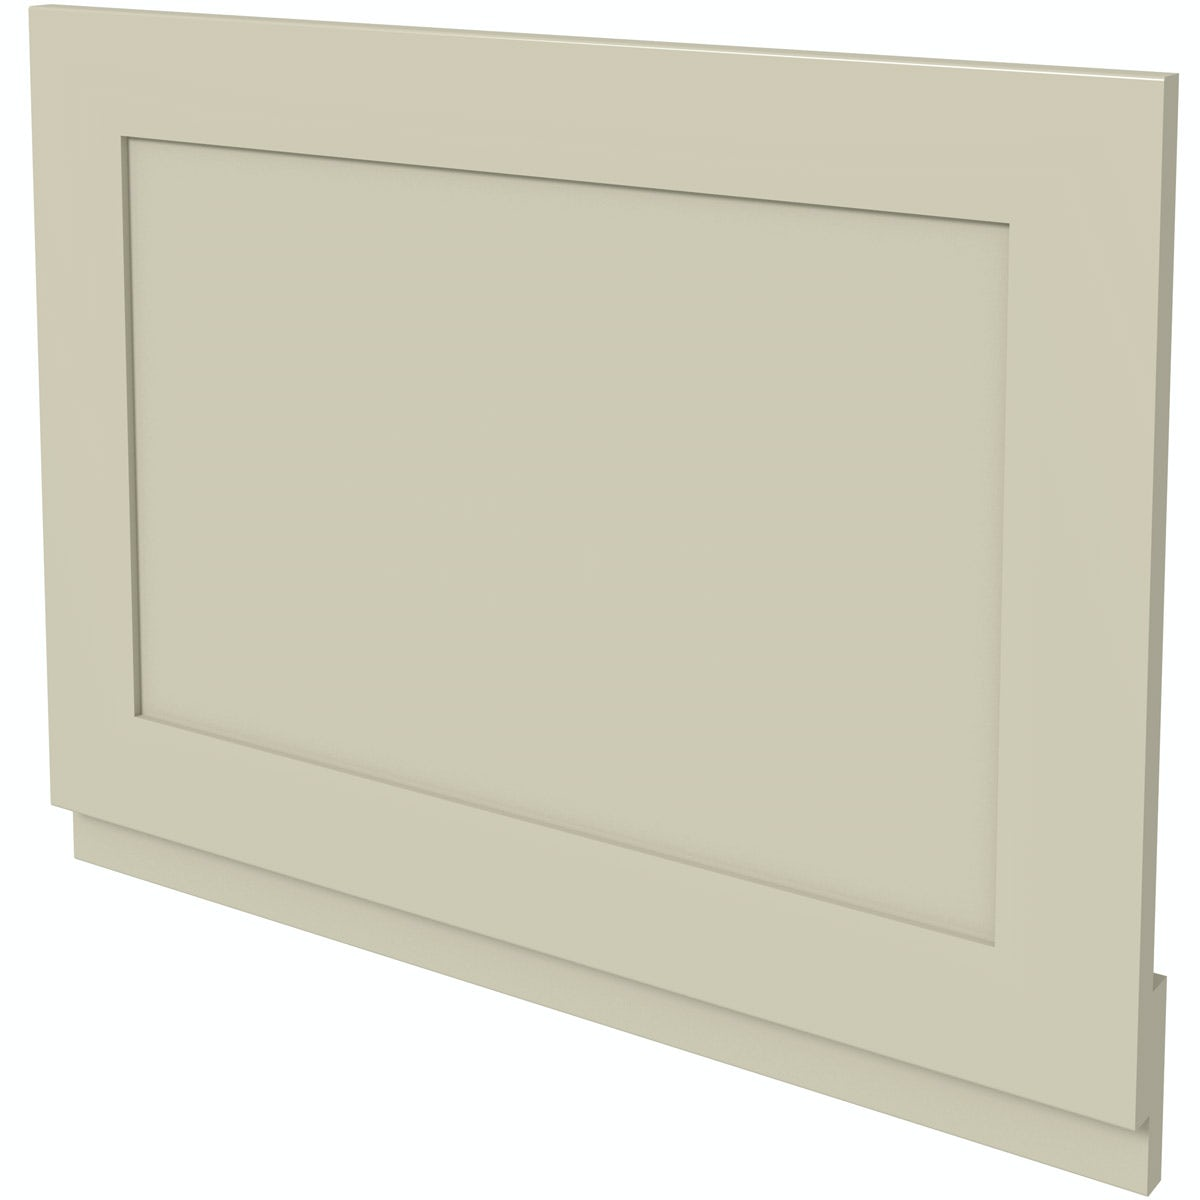 The Bath Co. Camberley satin ivory bath end panel 700mm